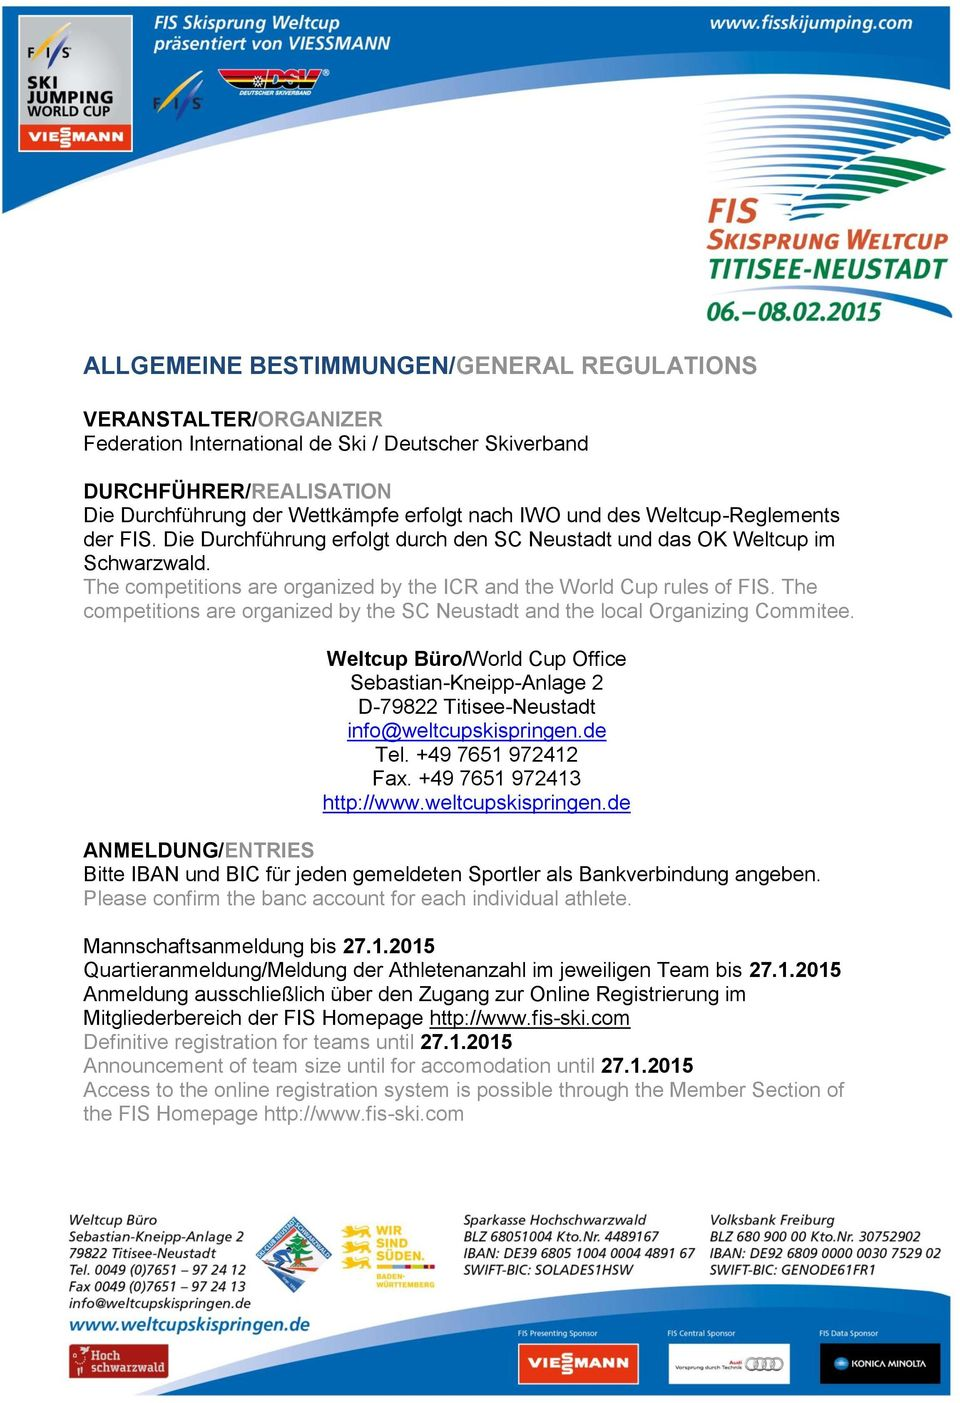 The competitions are organized by the SC Neustadt and the local Organizing Commitee. Weltcup Büro/World Cup Office Sebastian-Kneipp-Anlage 2 D-79822 Titisee-Neustadt info@weltcupskispringen.de Tel.